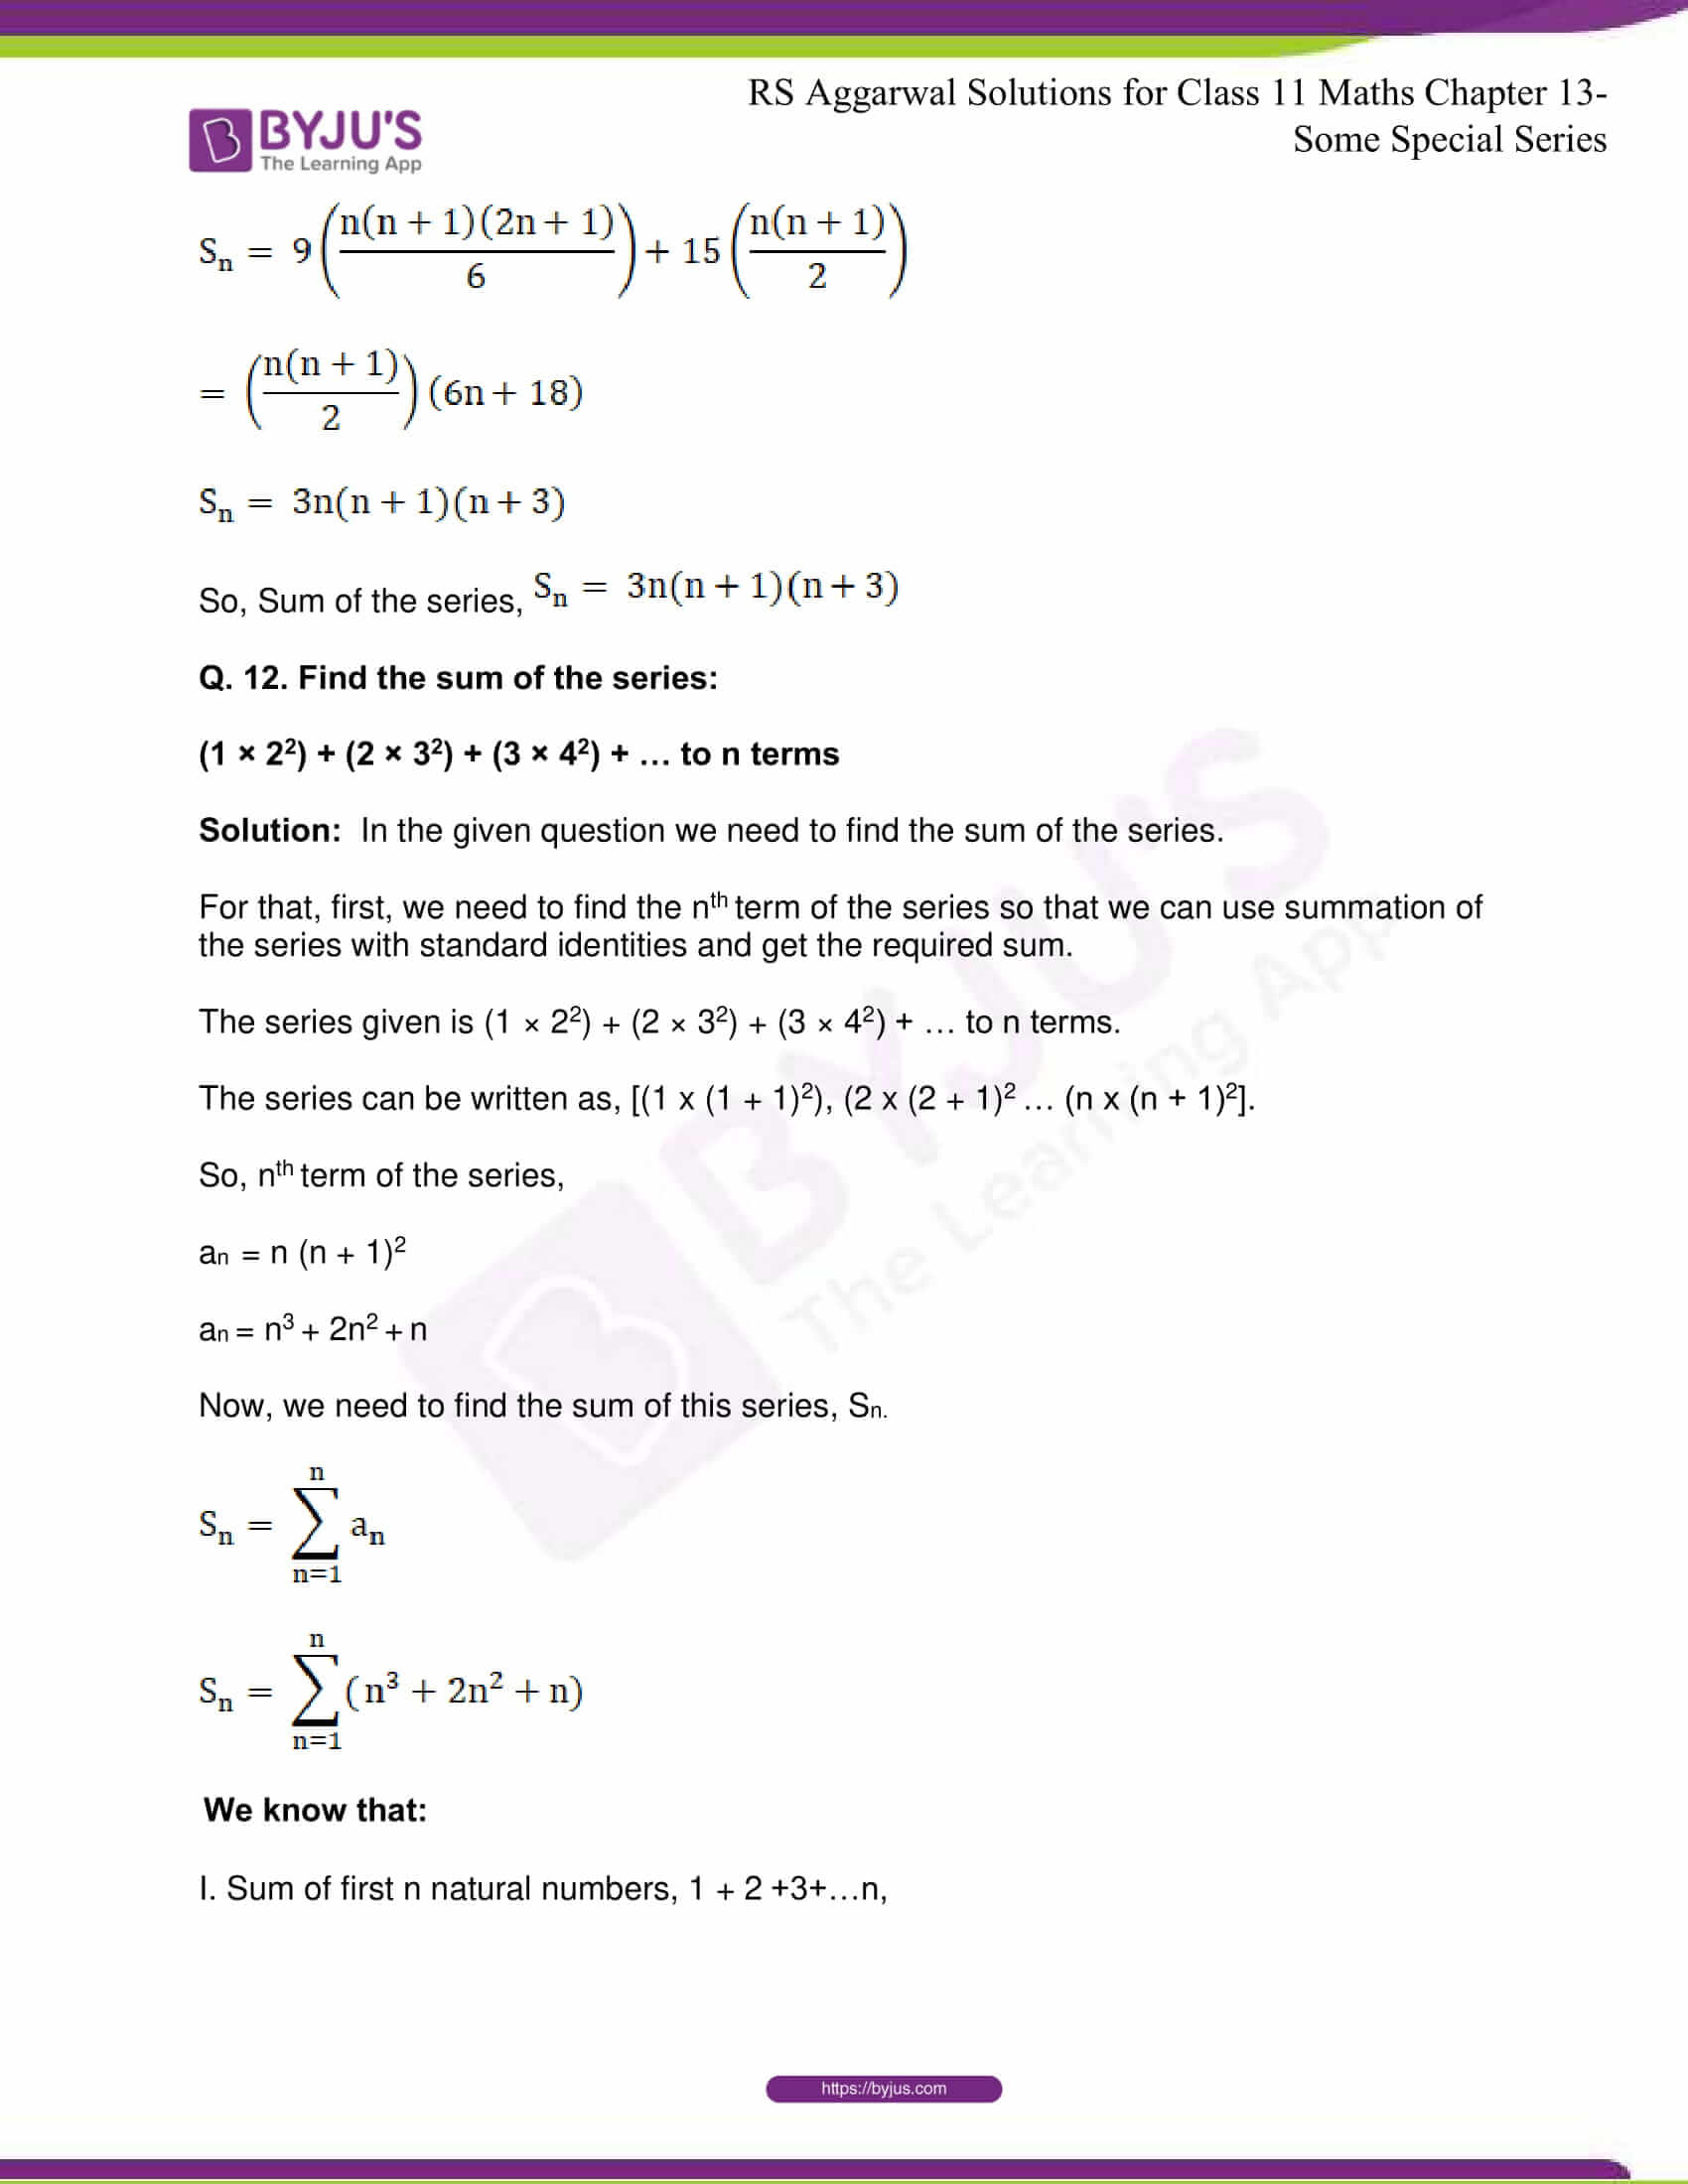 rsaggarwal solutions class 11 maths chapter 13 21